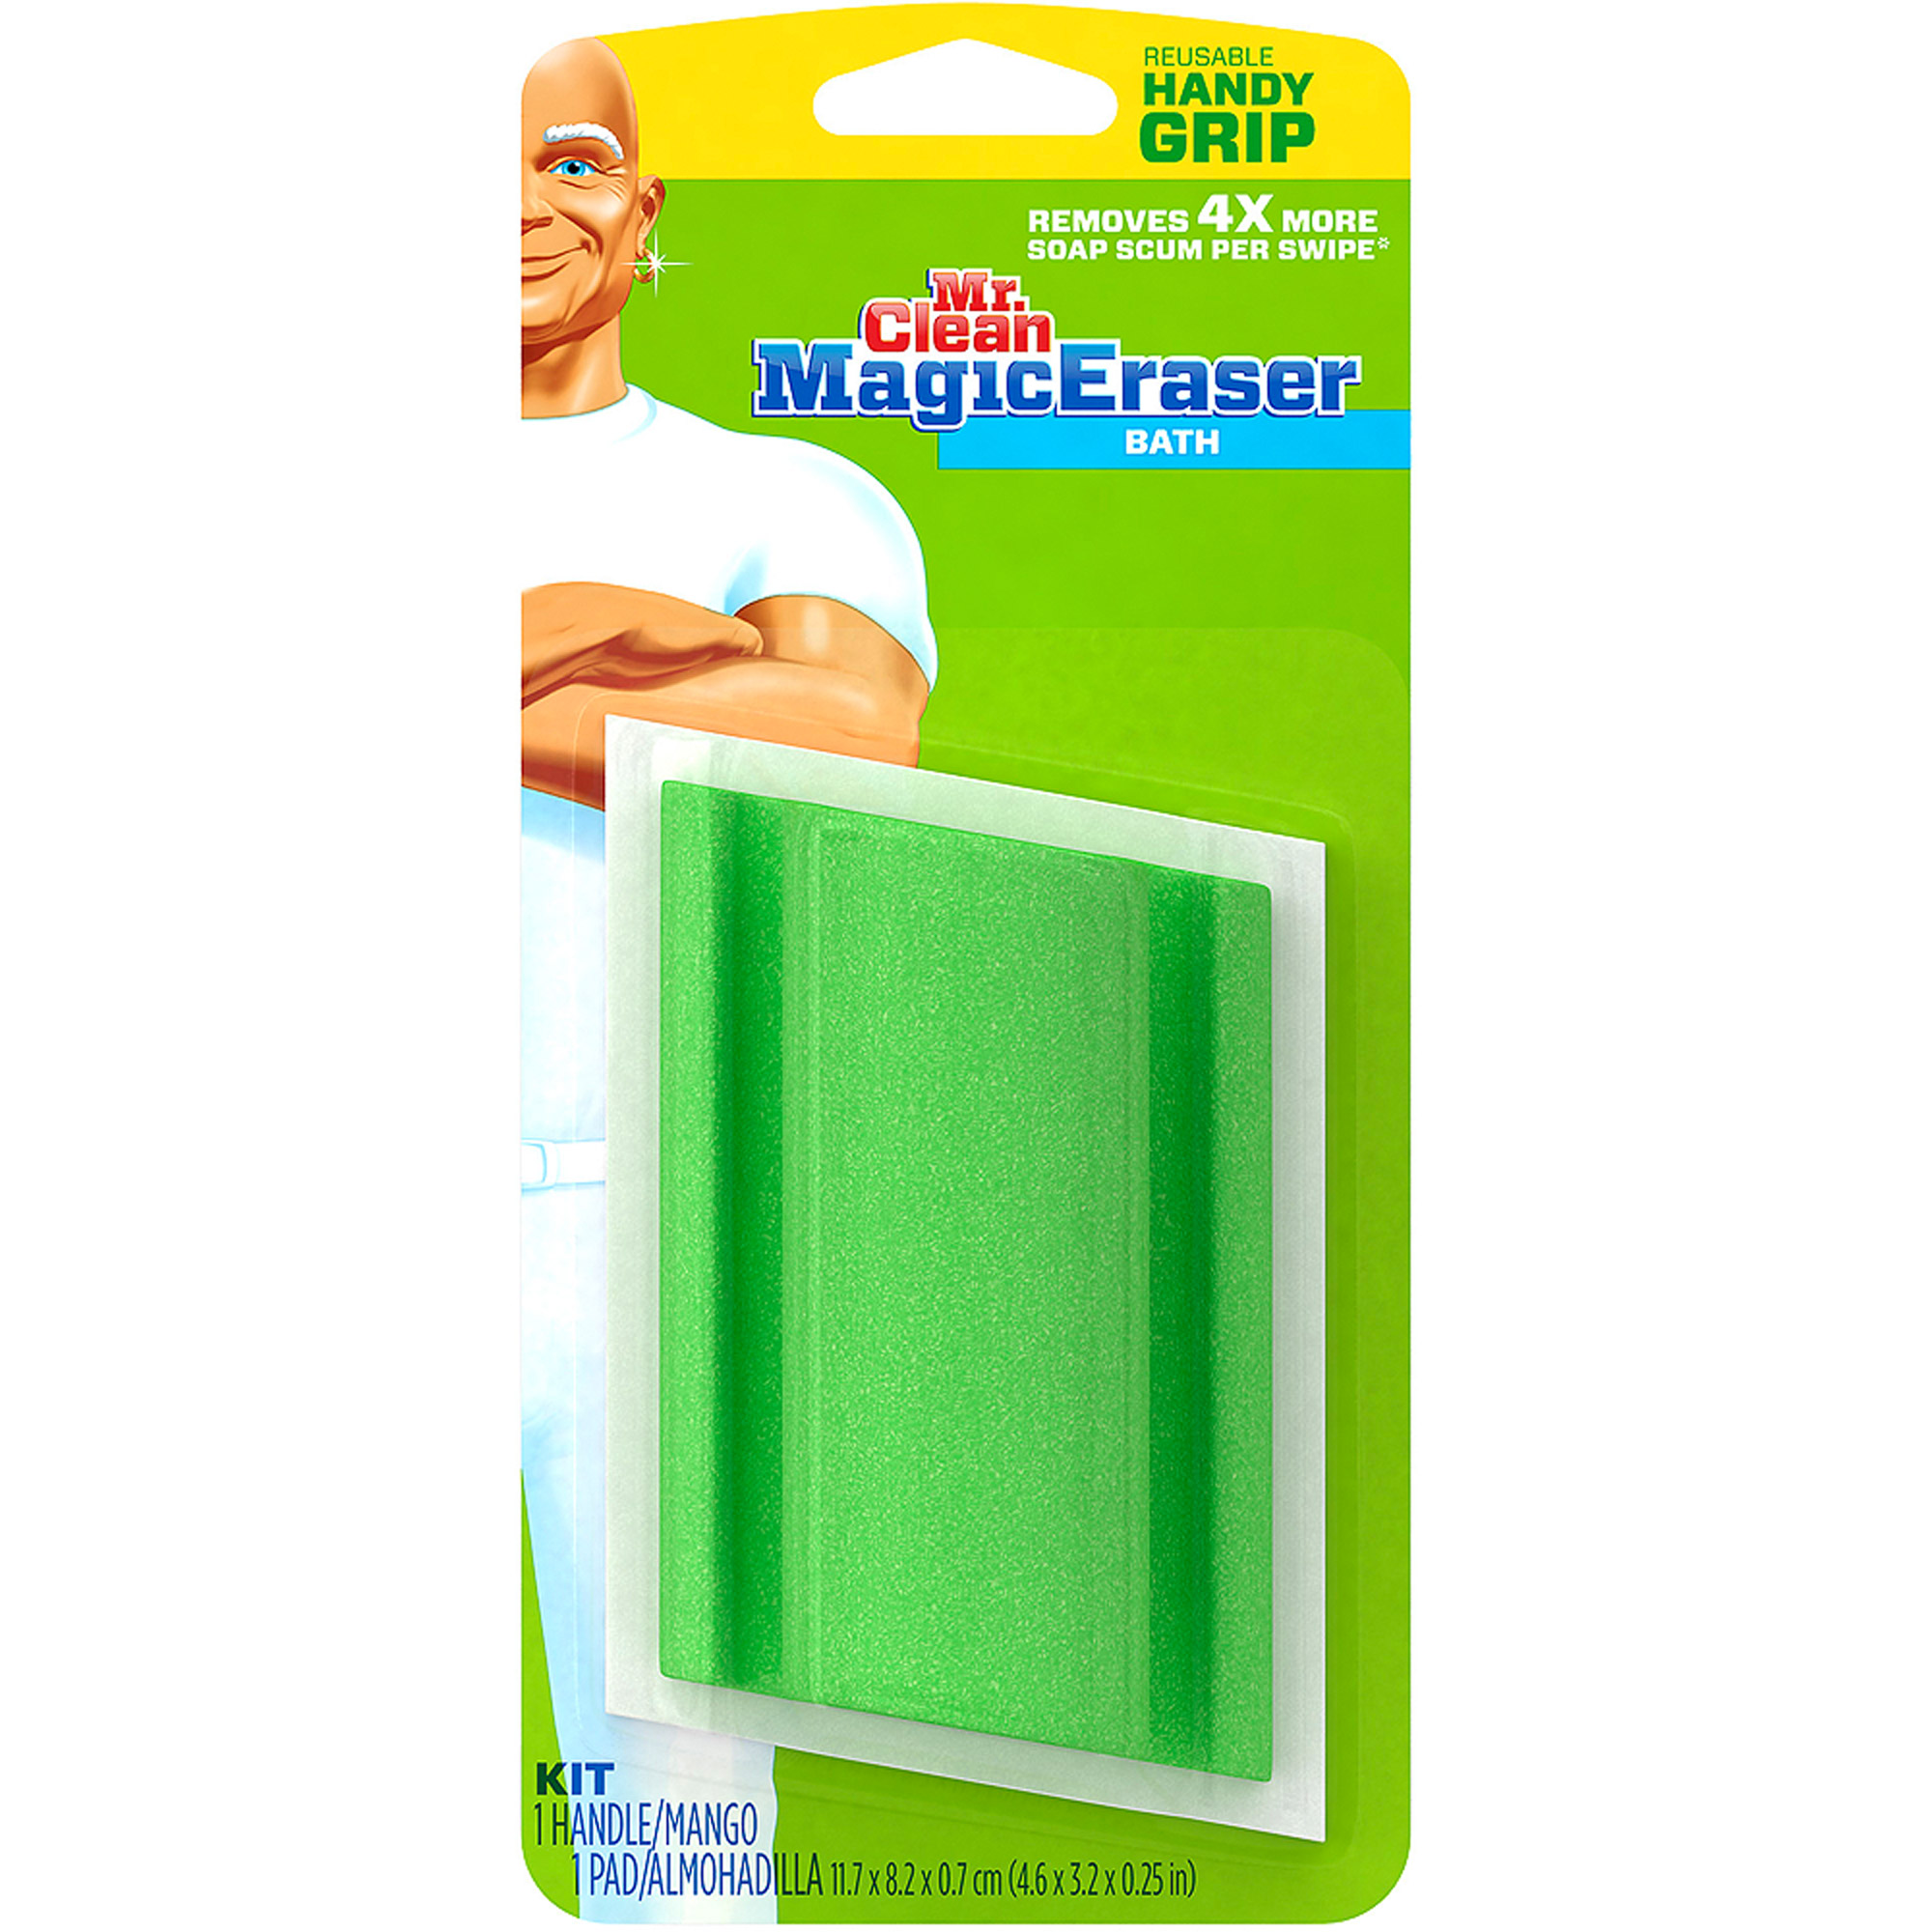 Mr. Clean Magic Eraser Bath Household Cleaning Pad Kit, 2 Pk   Walmart.com